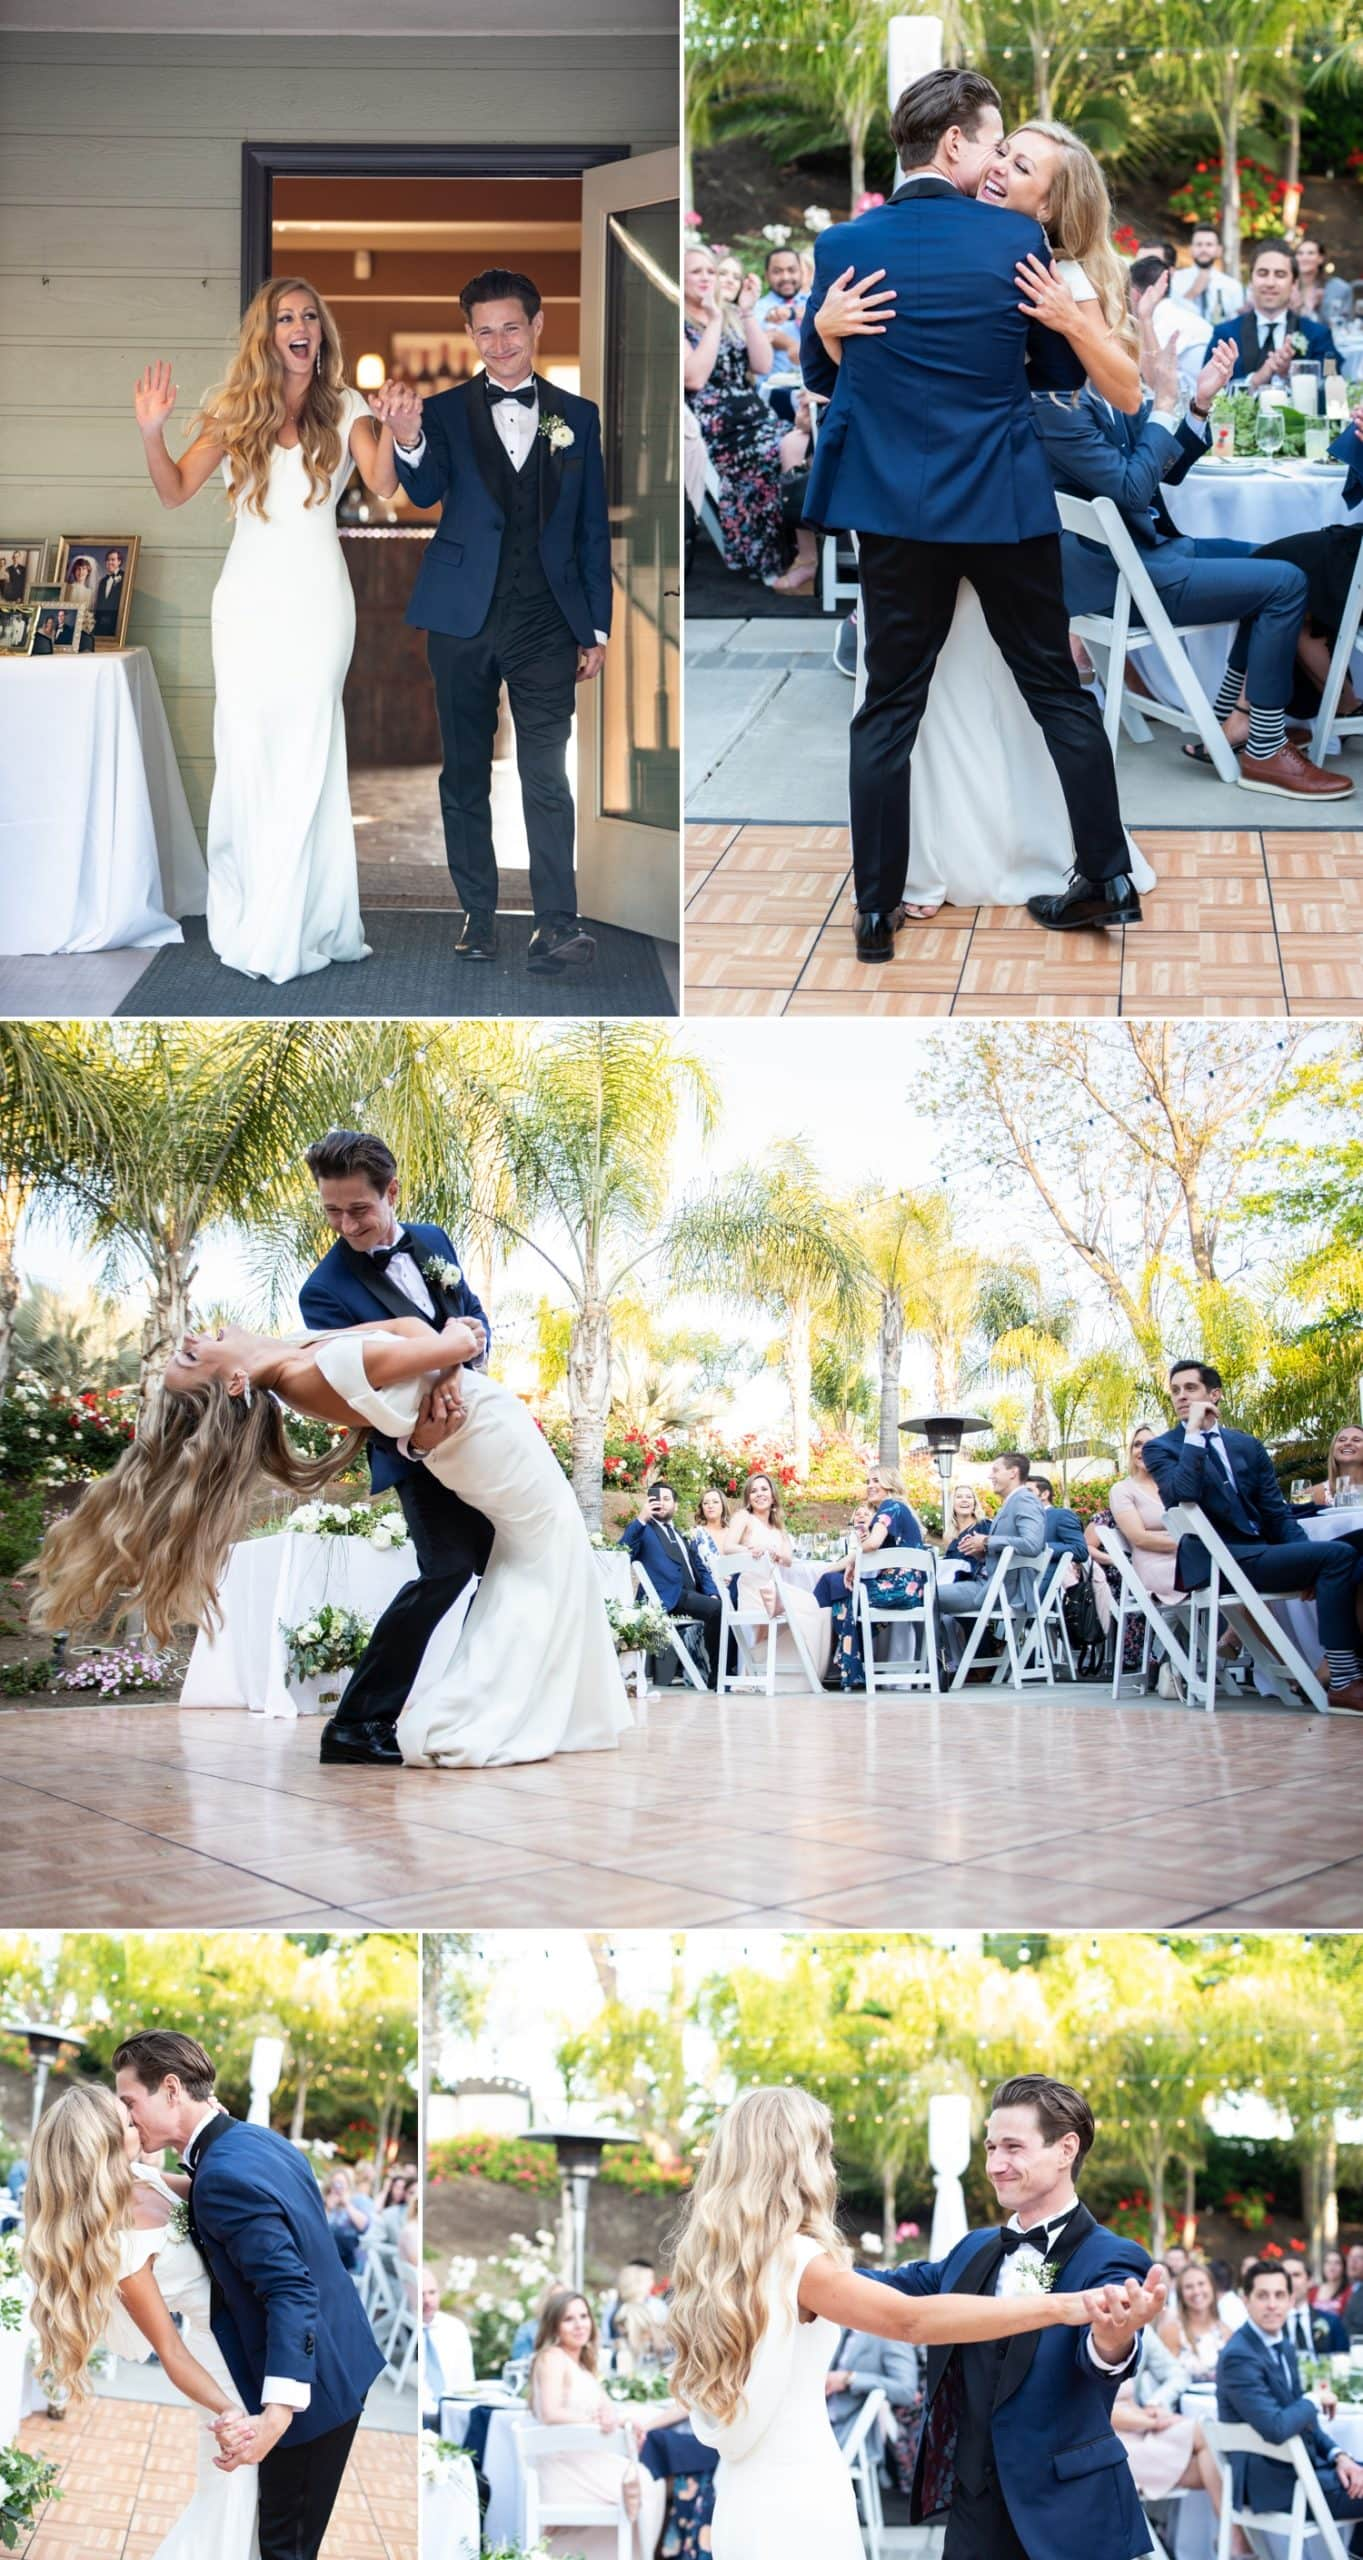 Bride and groom doing their first dance at Chapin Family Vineyards in Temecula.